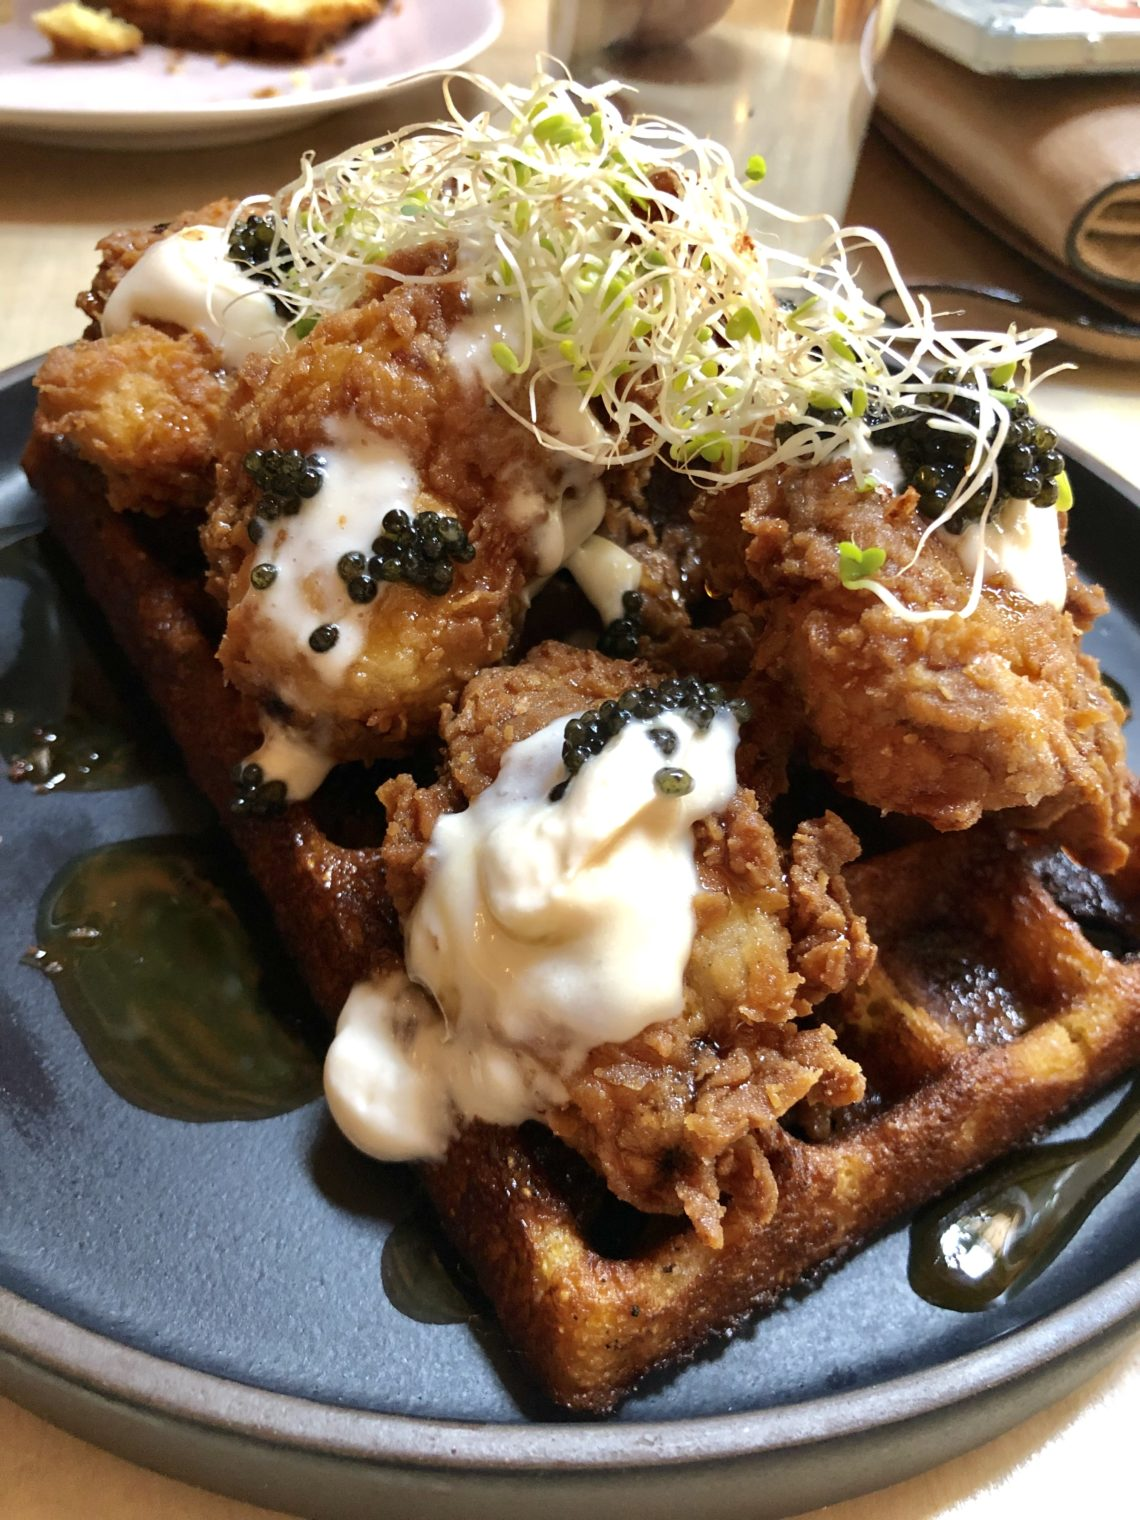 Atrium Chicken & Waffles